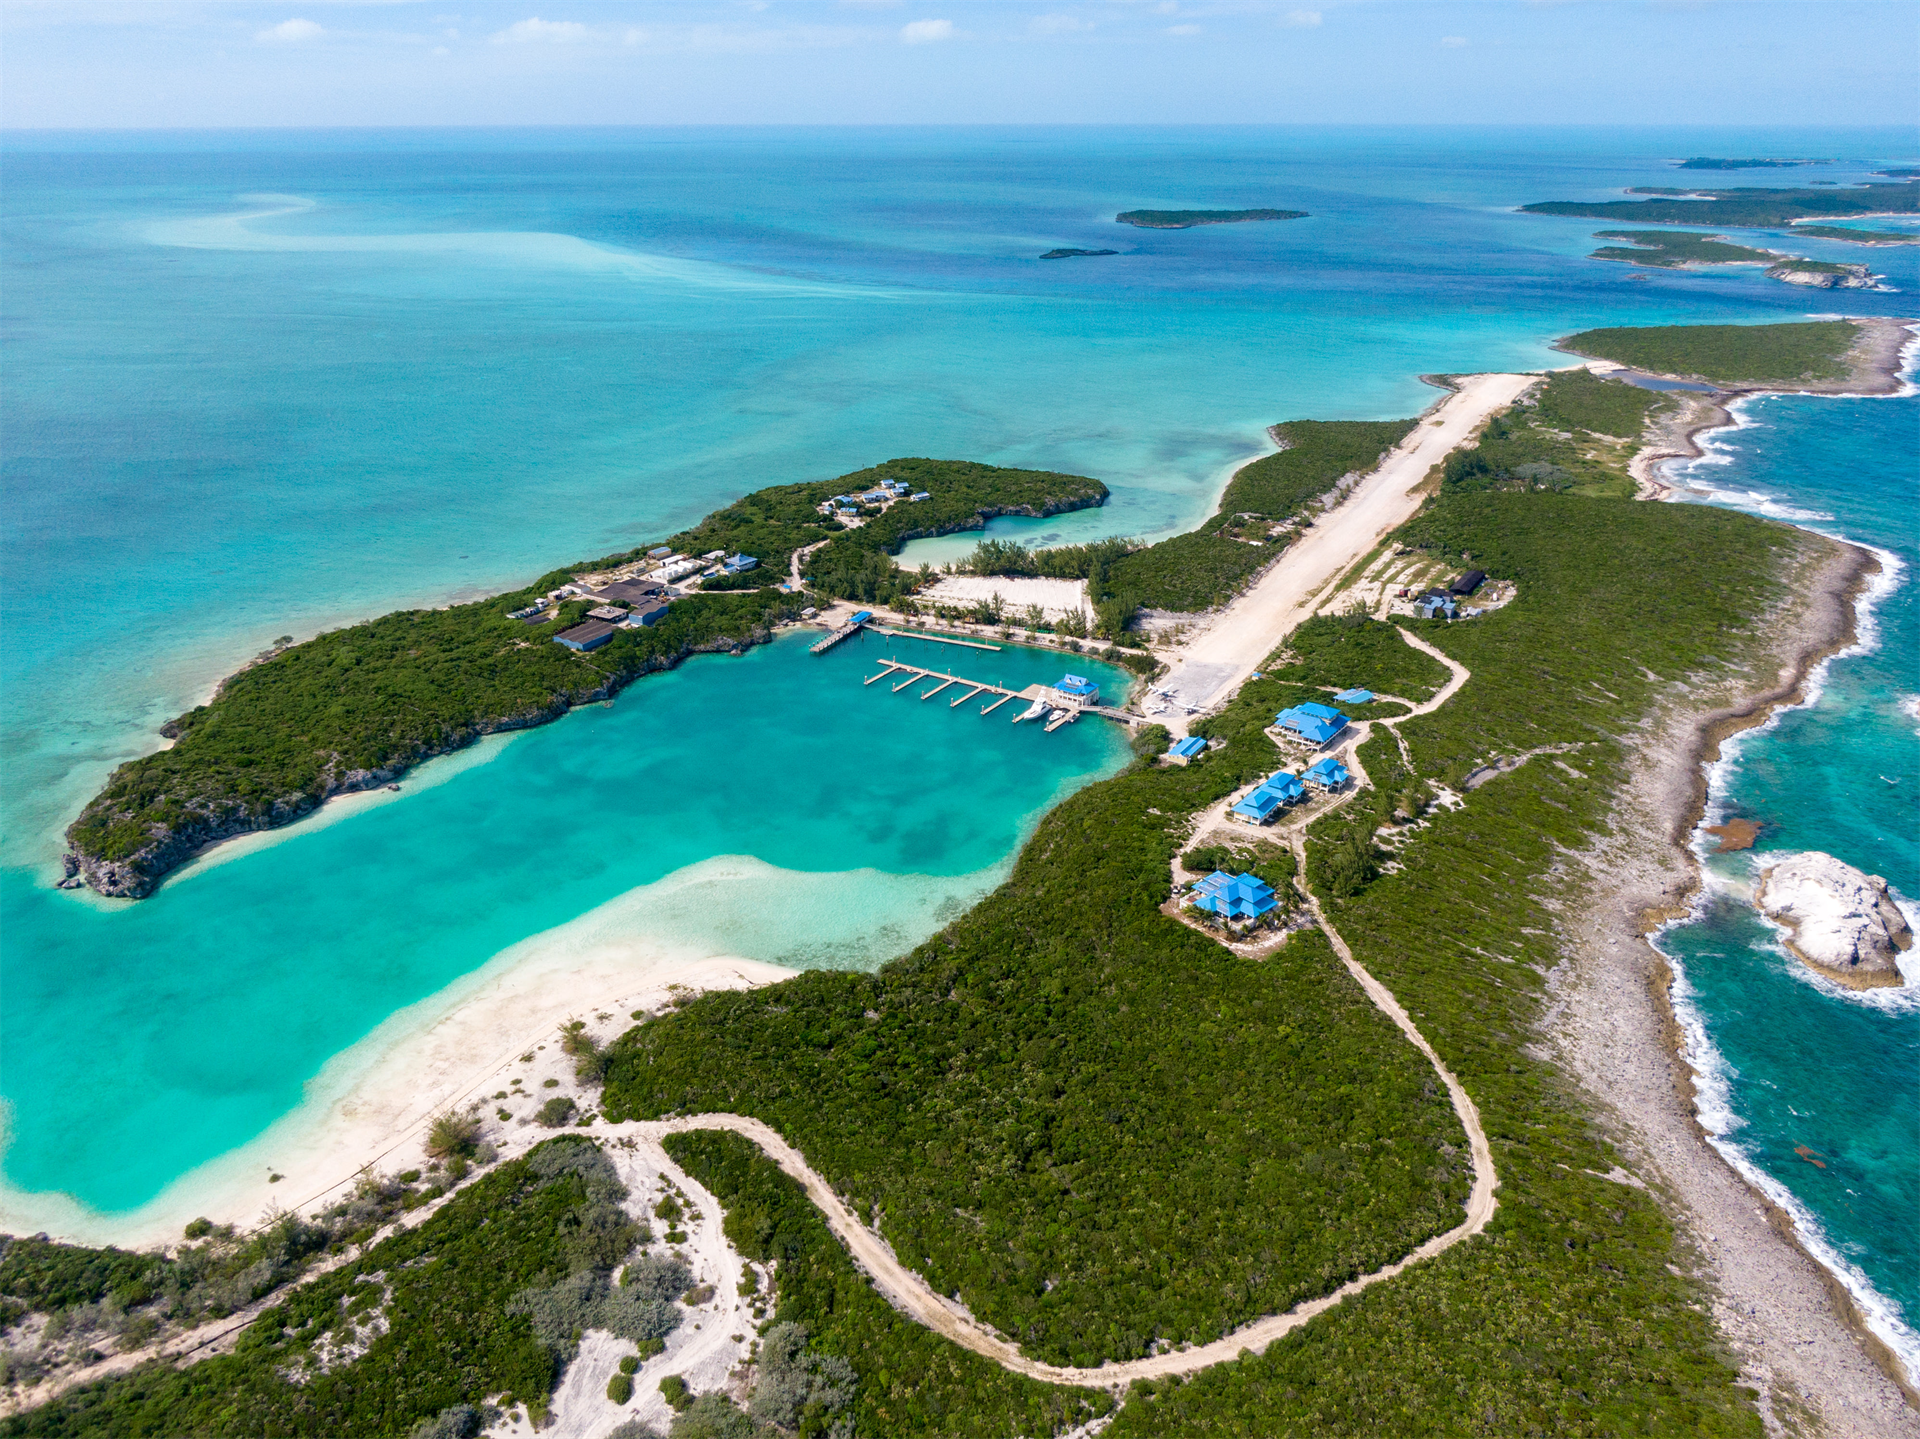 Property for Sale at Exuma Cays, Exuma Bahamas